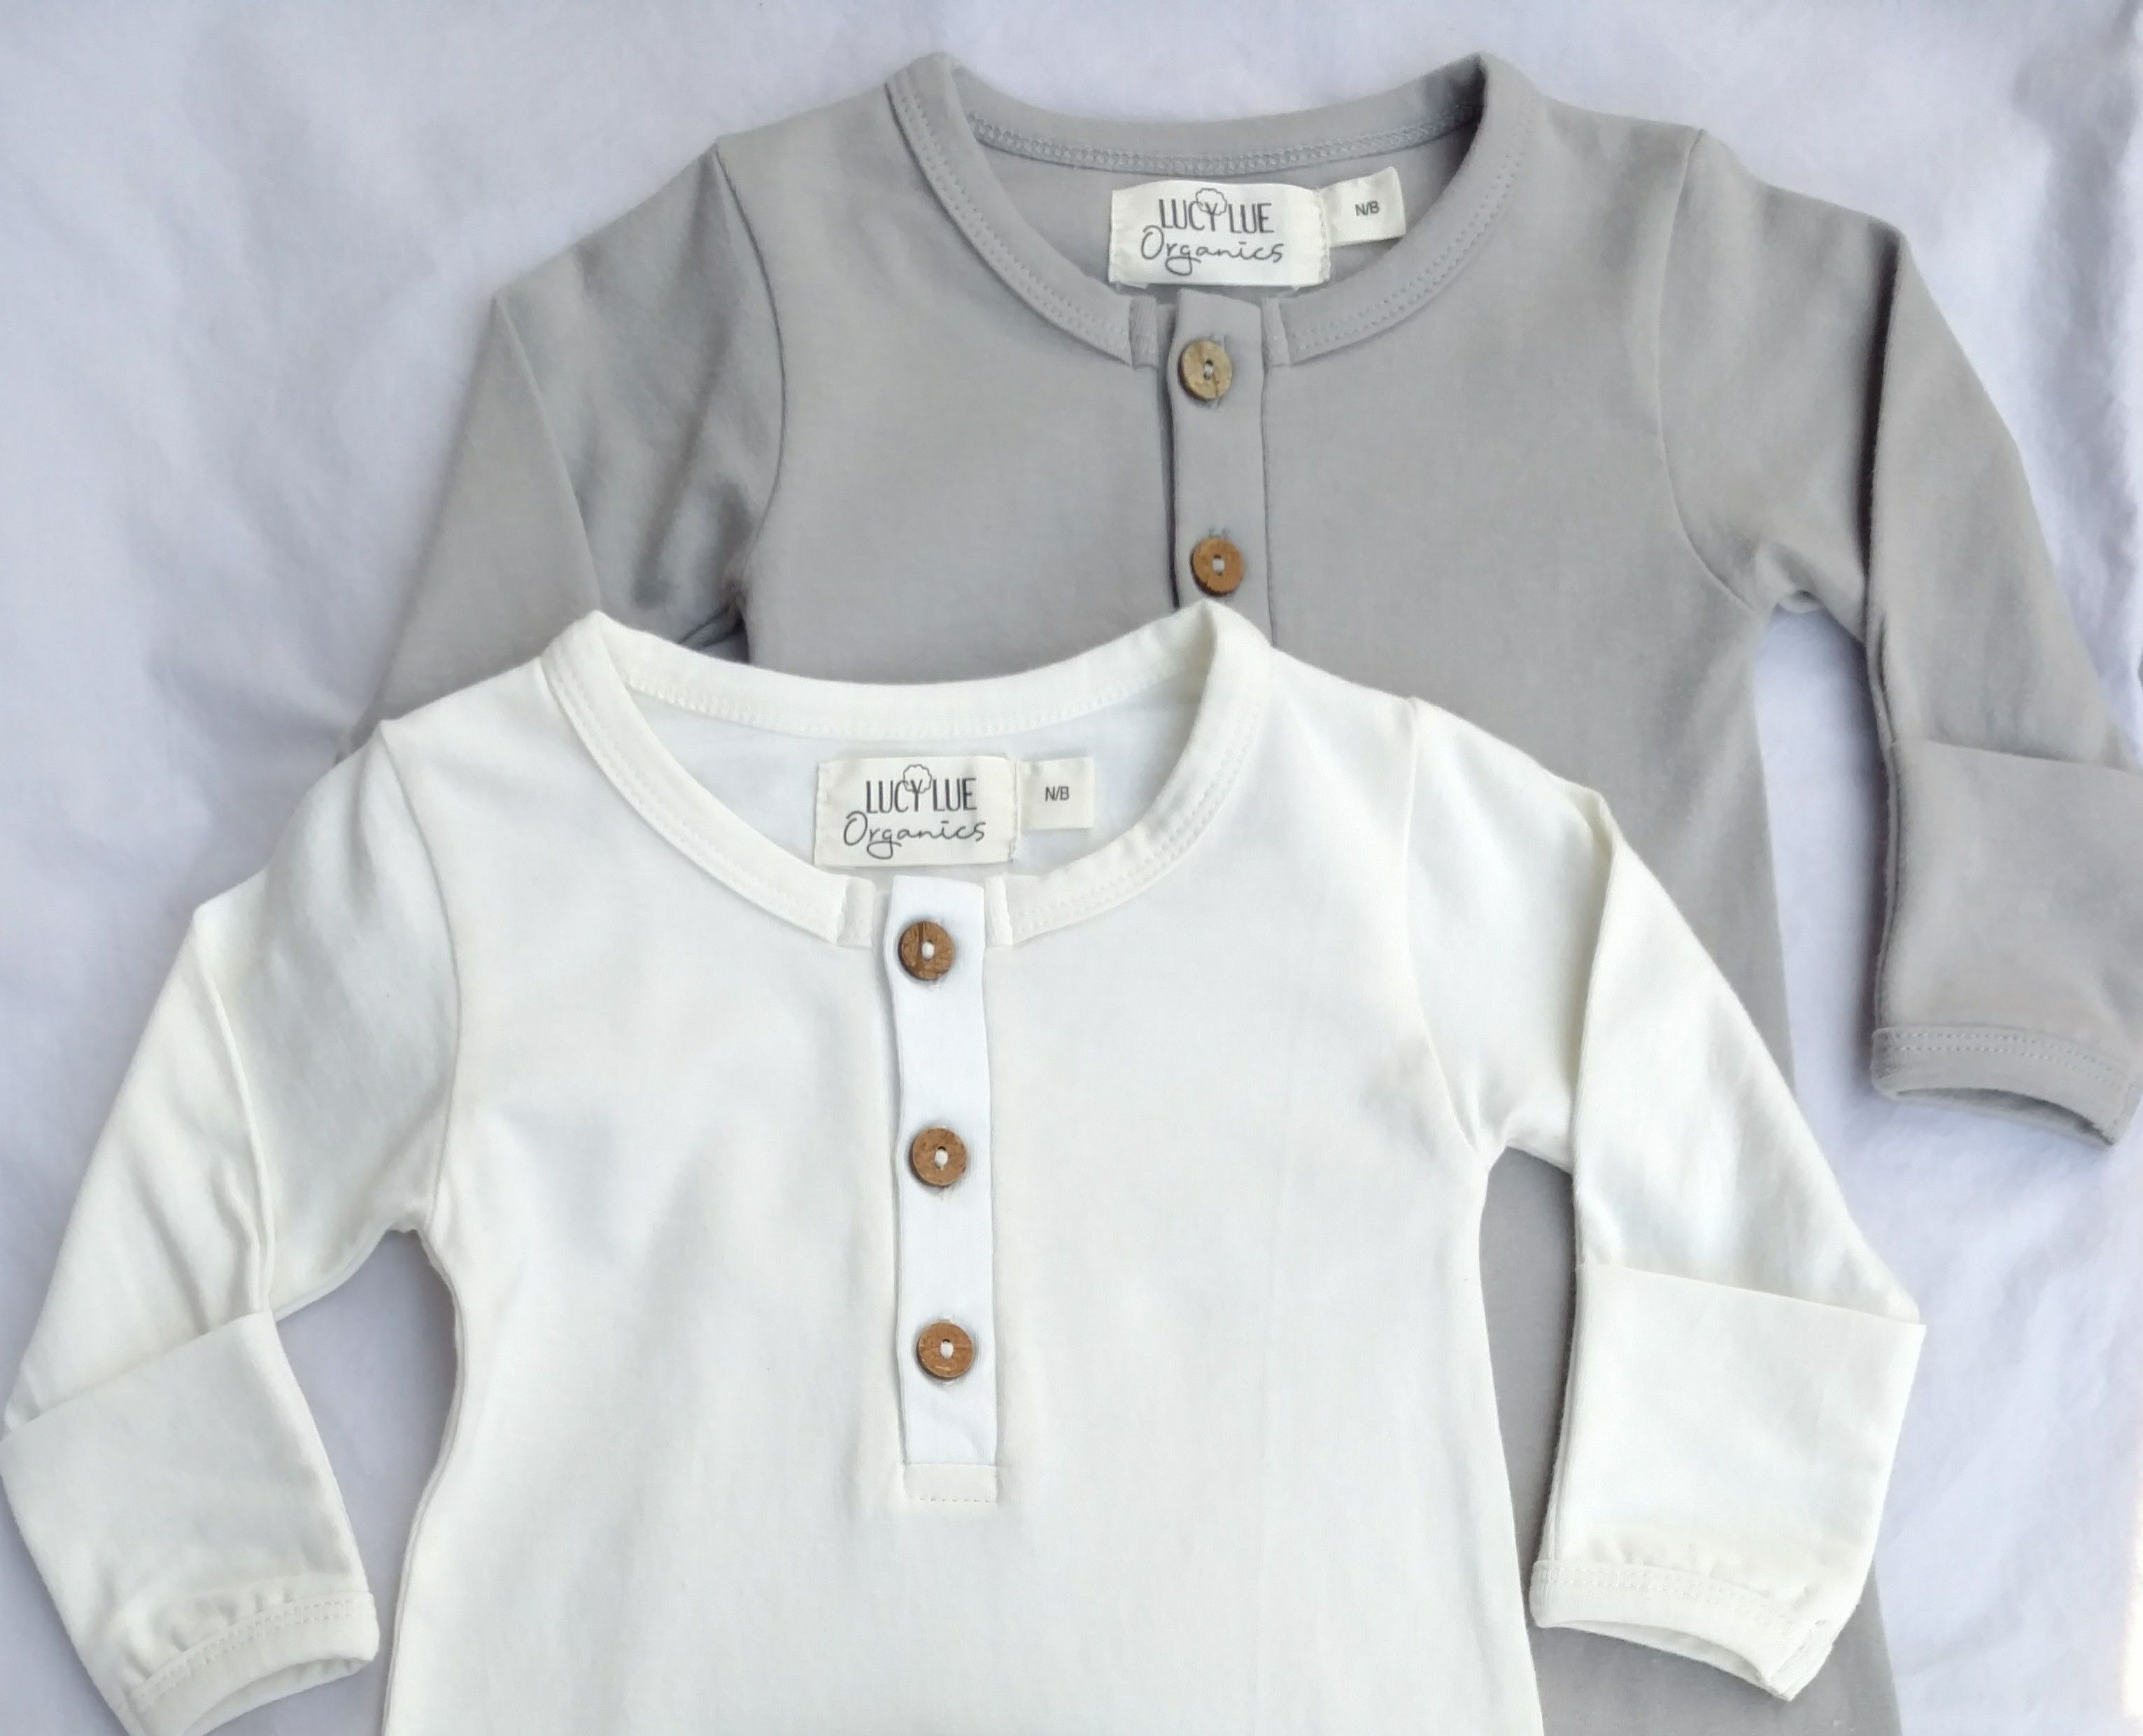 Newborn ing home outfit from Lucy Lue Organics Layette set Baby